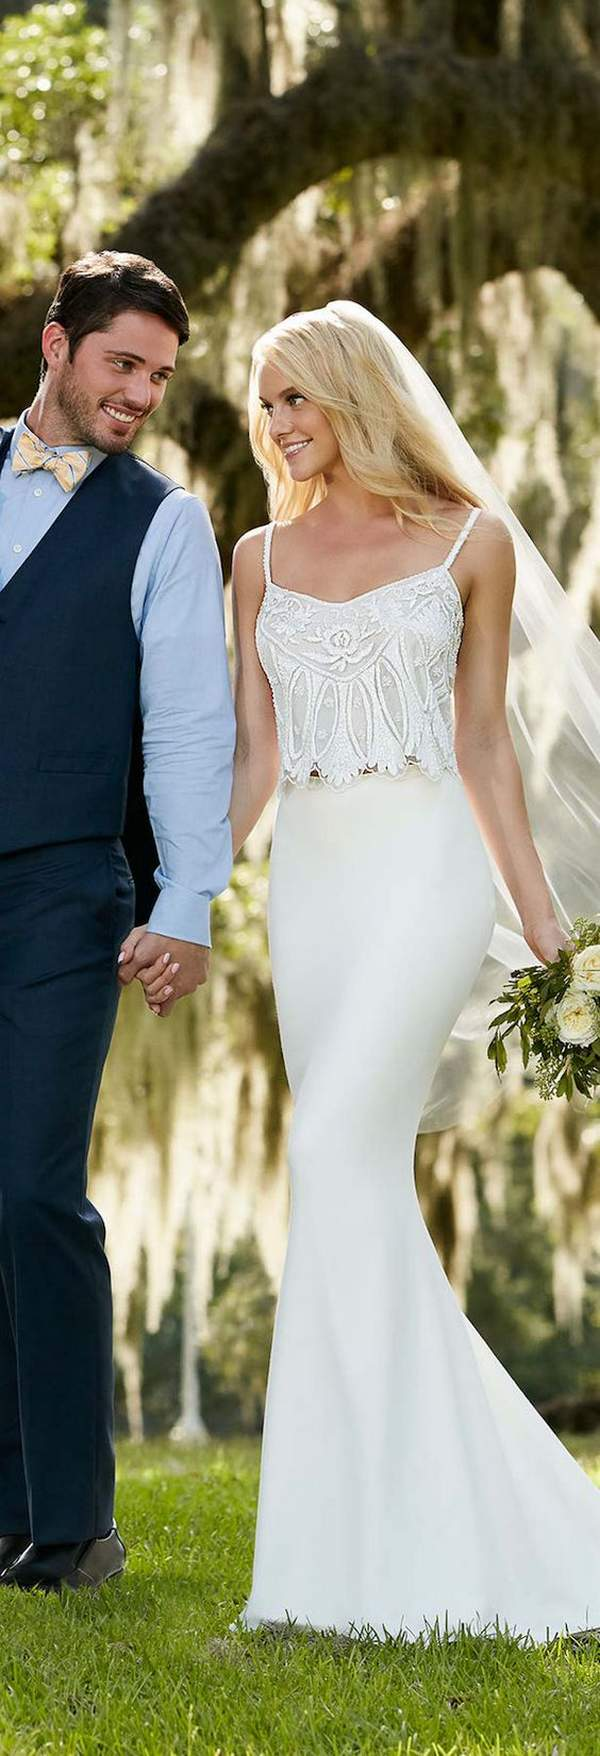 Best Styles for Beach Wedding Dresses_12